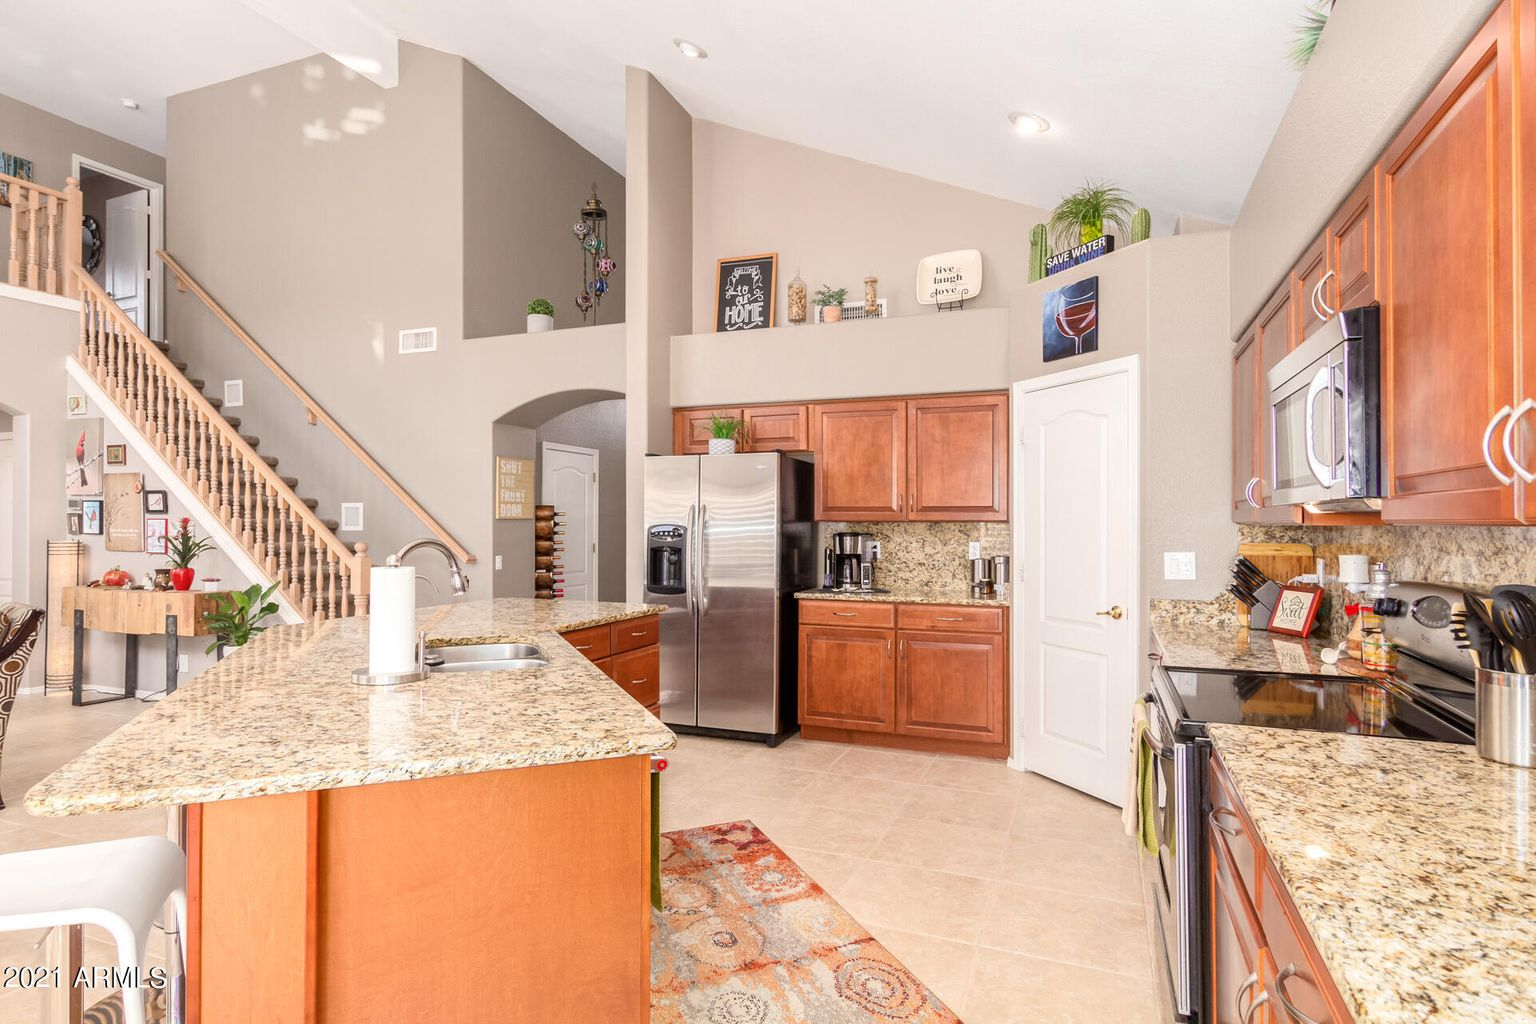 16 12th 16824          Generous Cabinets and Large Walk-in Pantry      Show more